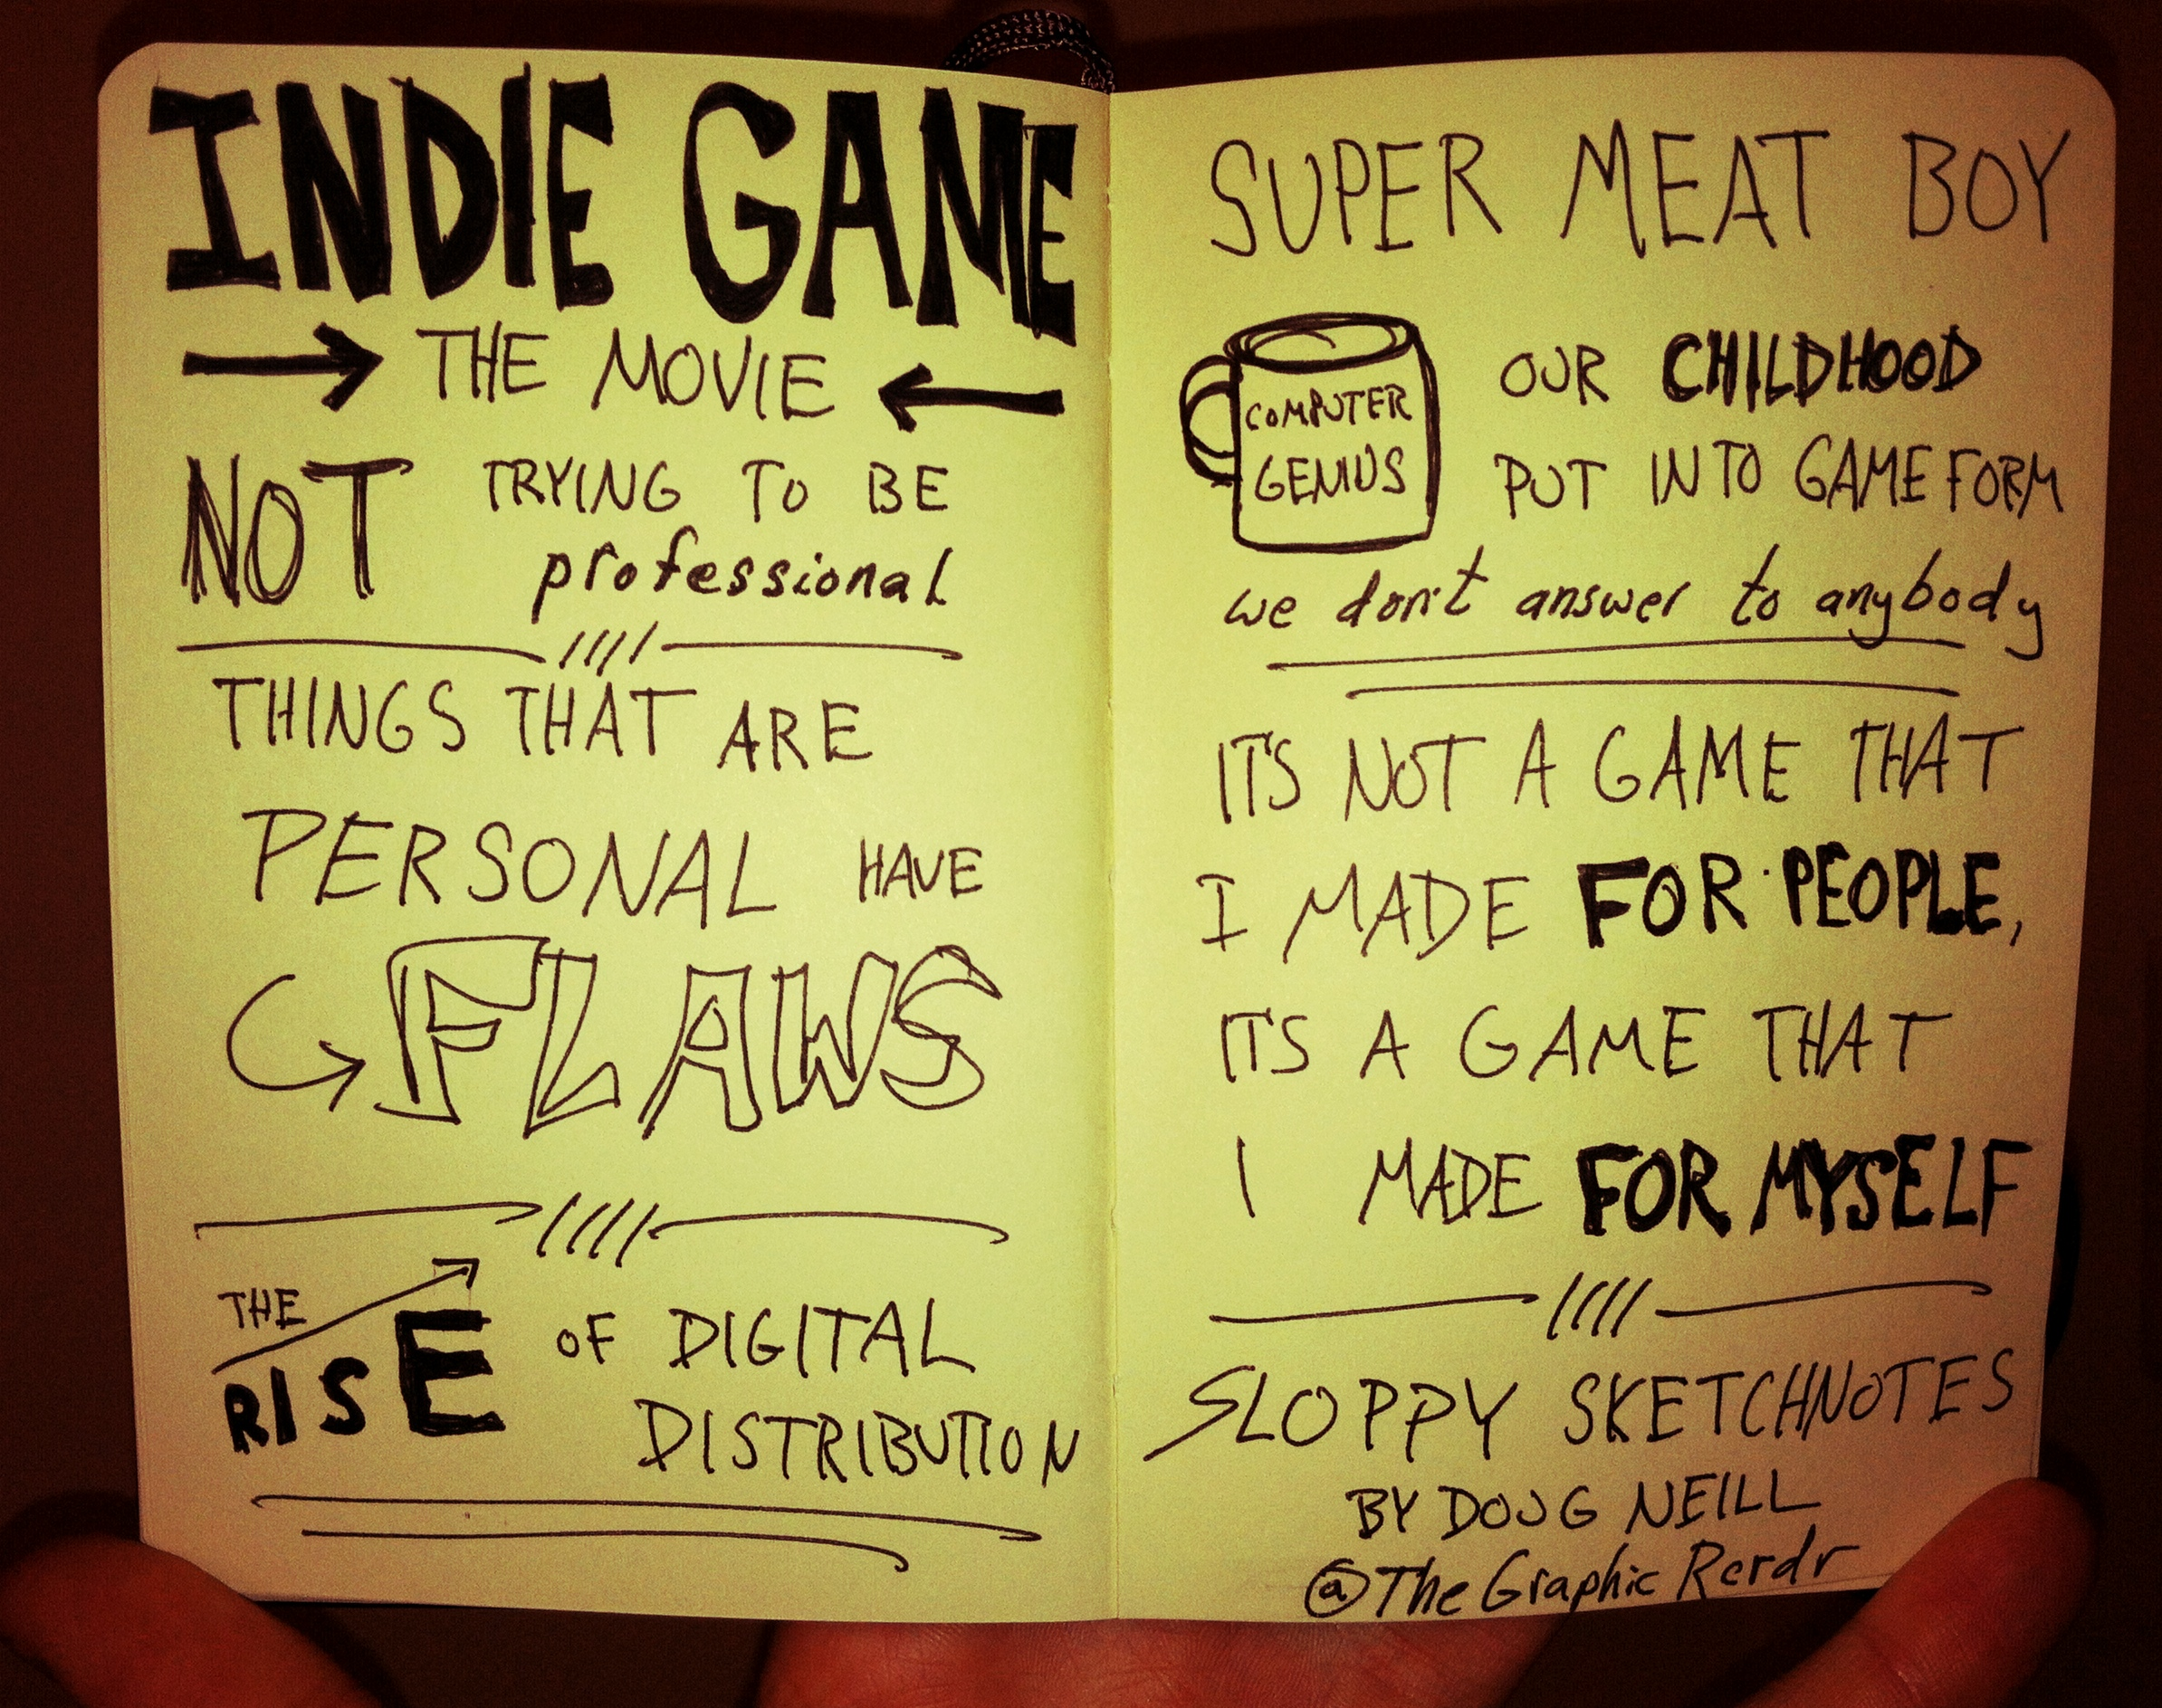 Indie Game The Movie - super meat boy, digital distribution -  Doug Neill Sketchnotes - The Graphic Recorder